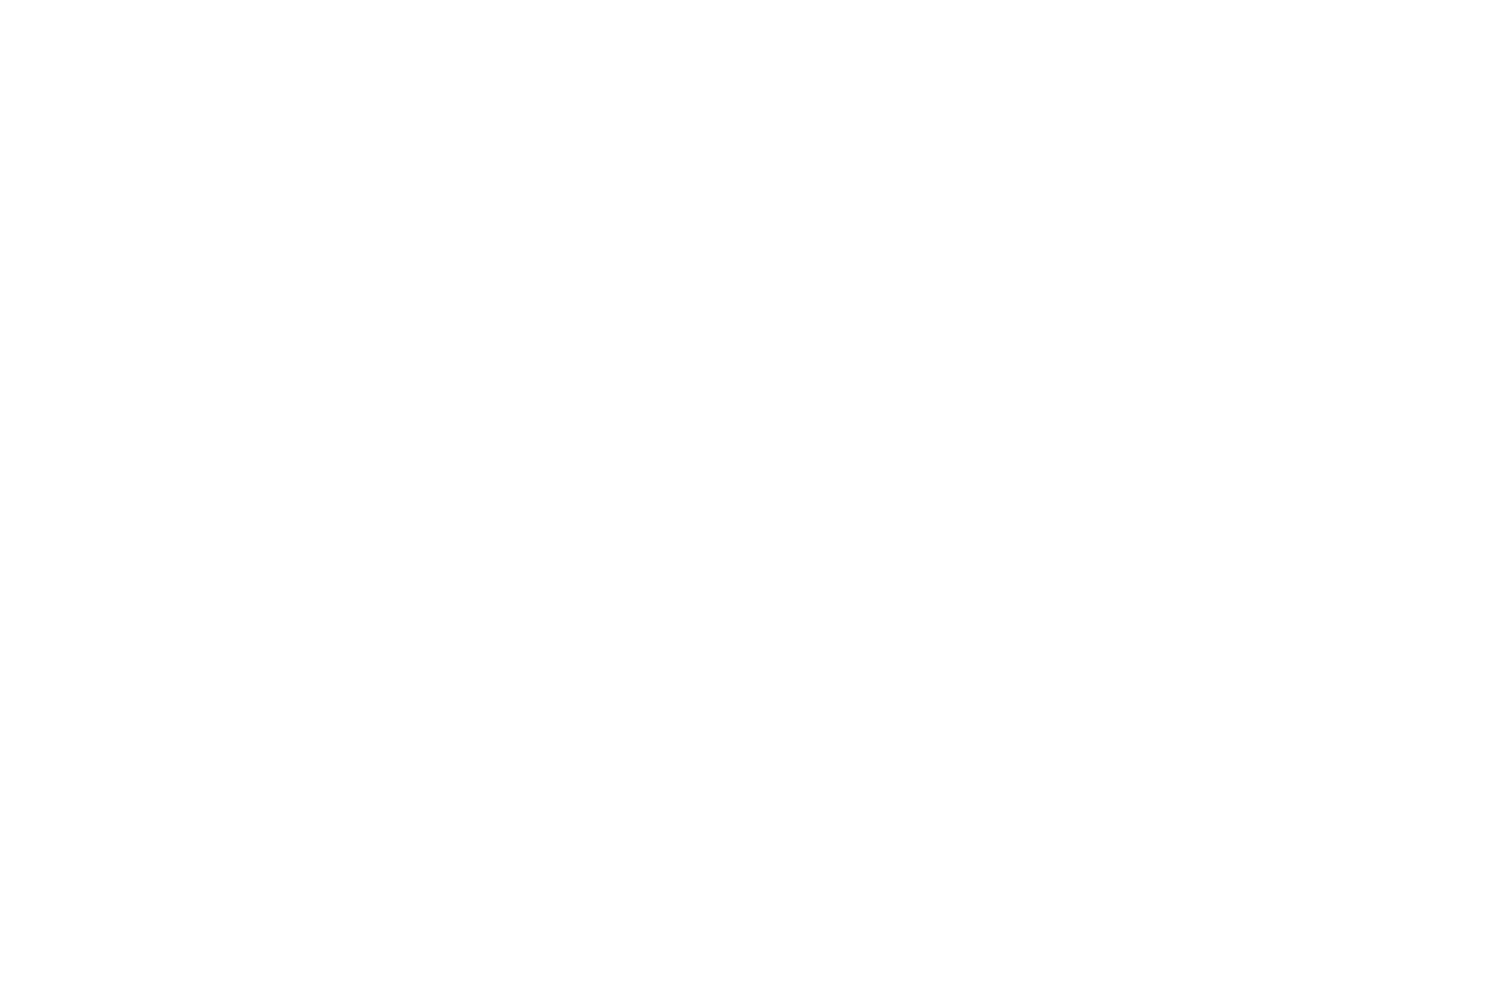 The Macallan Group